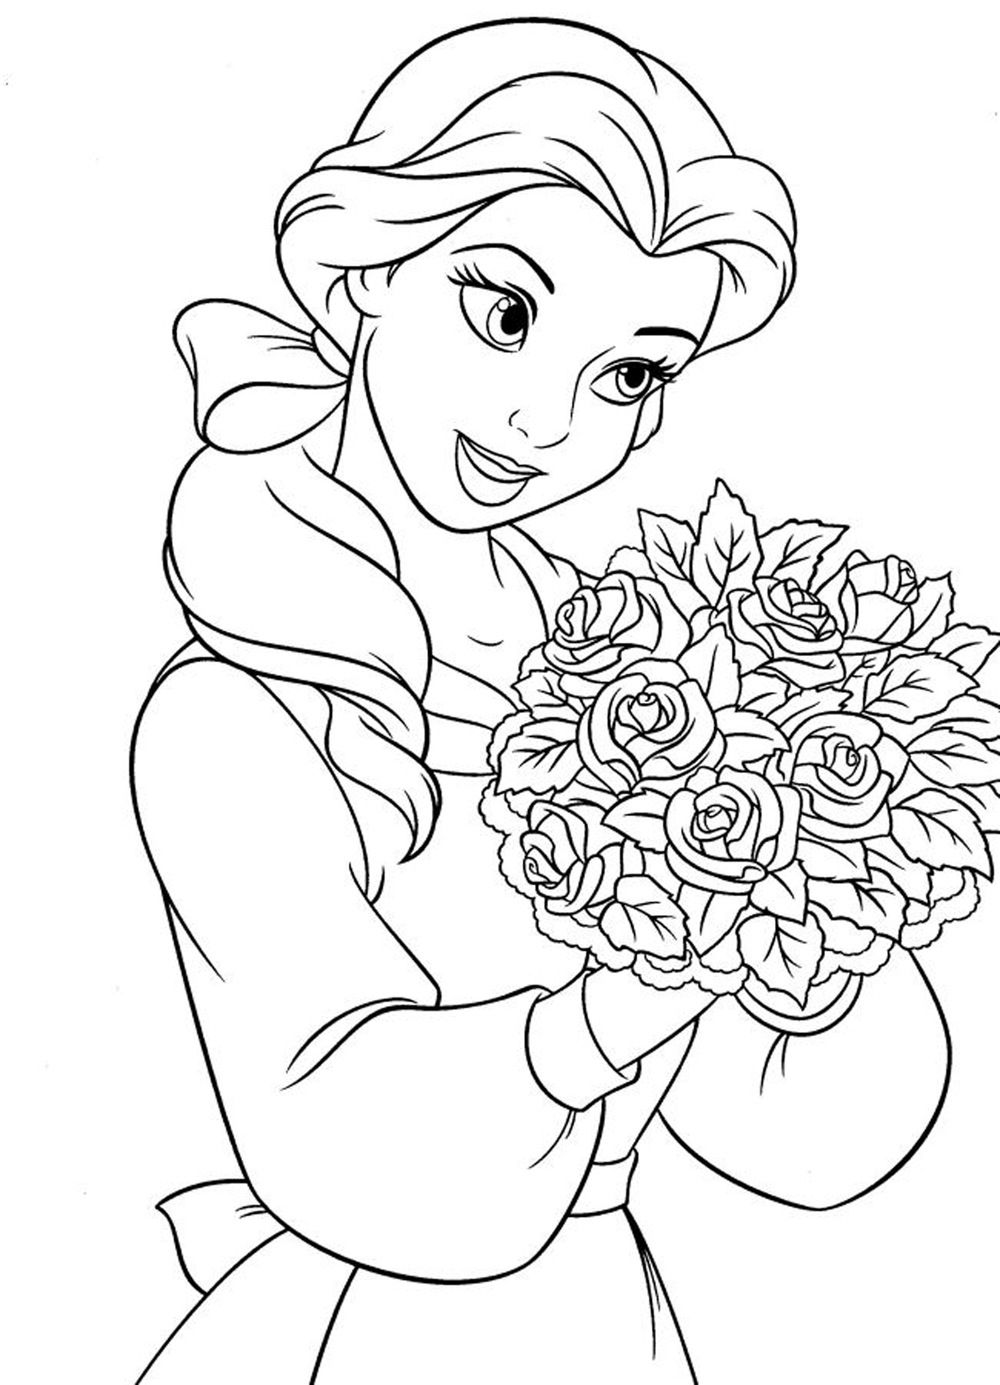 disney coloring book pages # 8